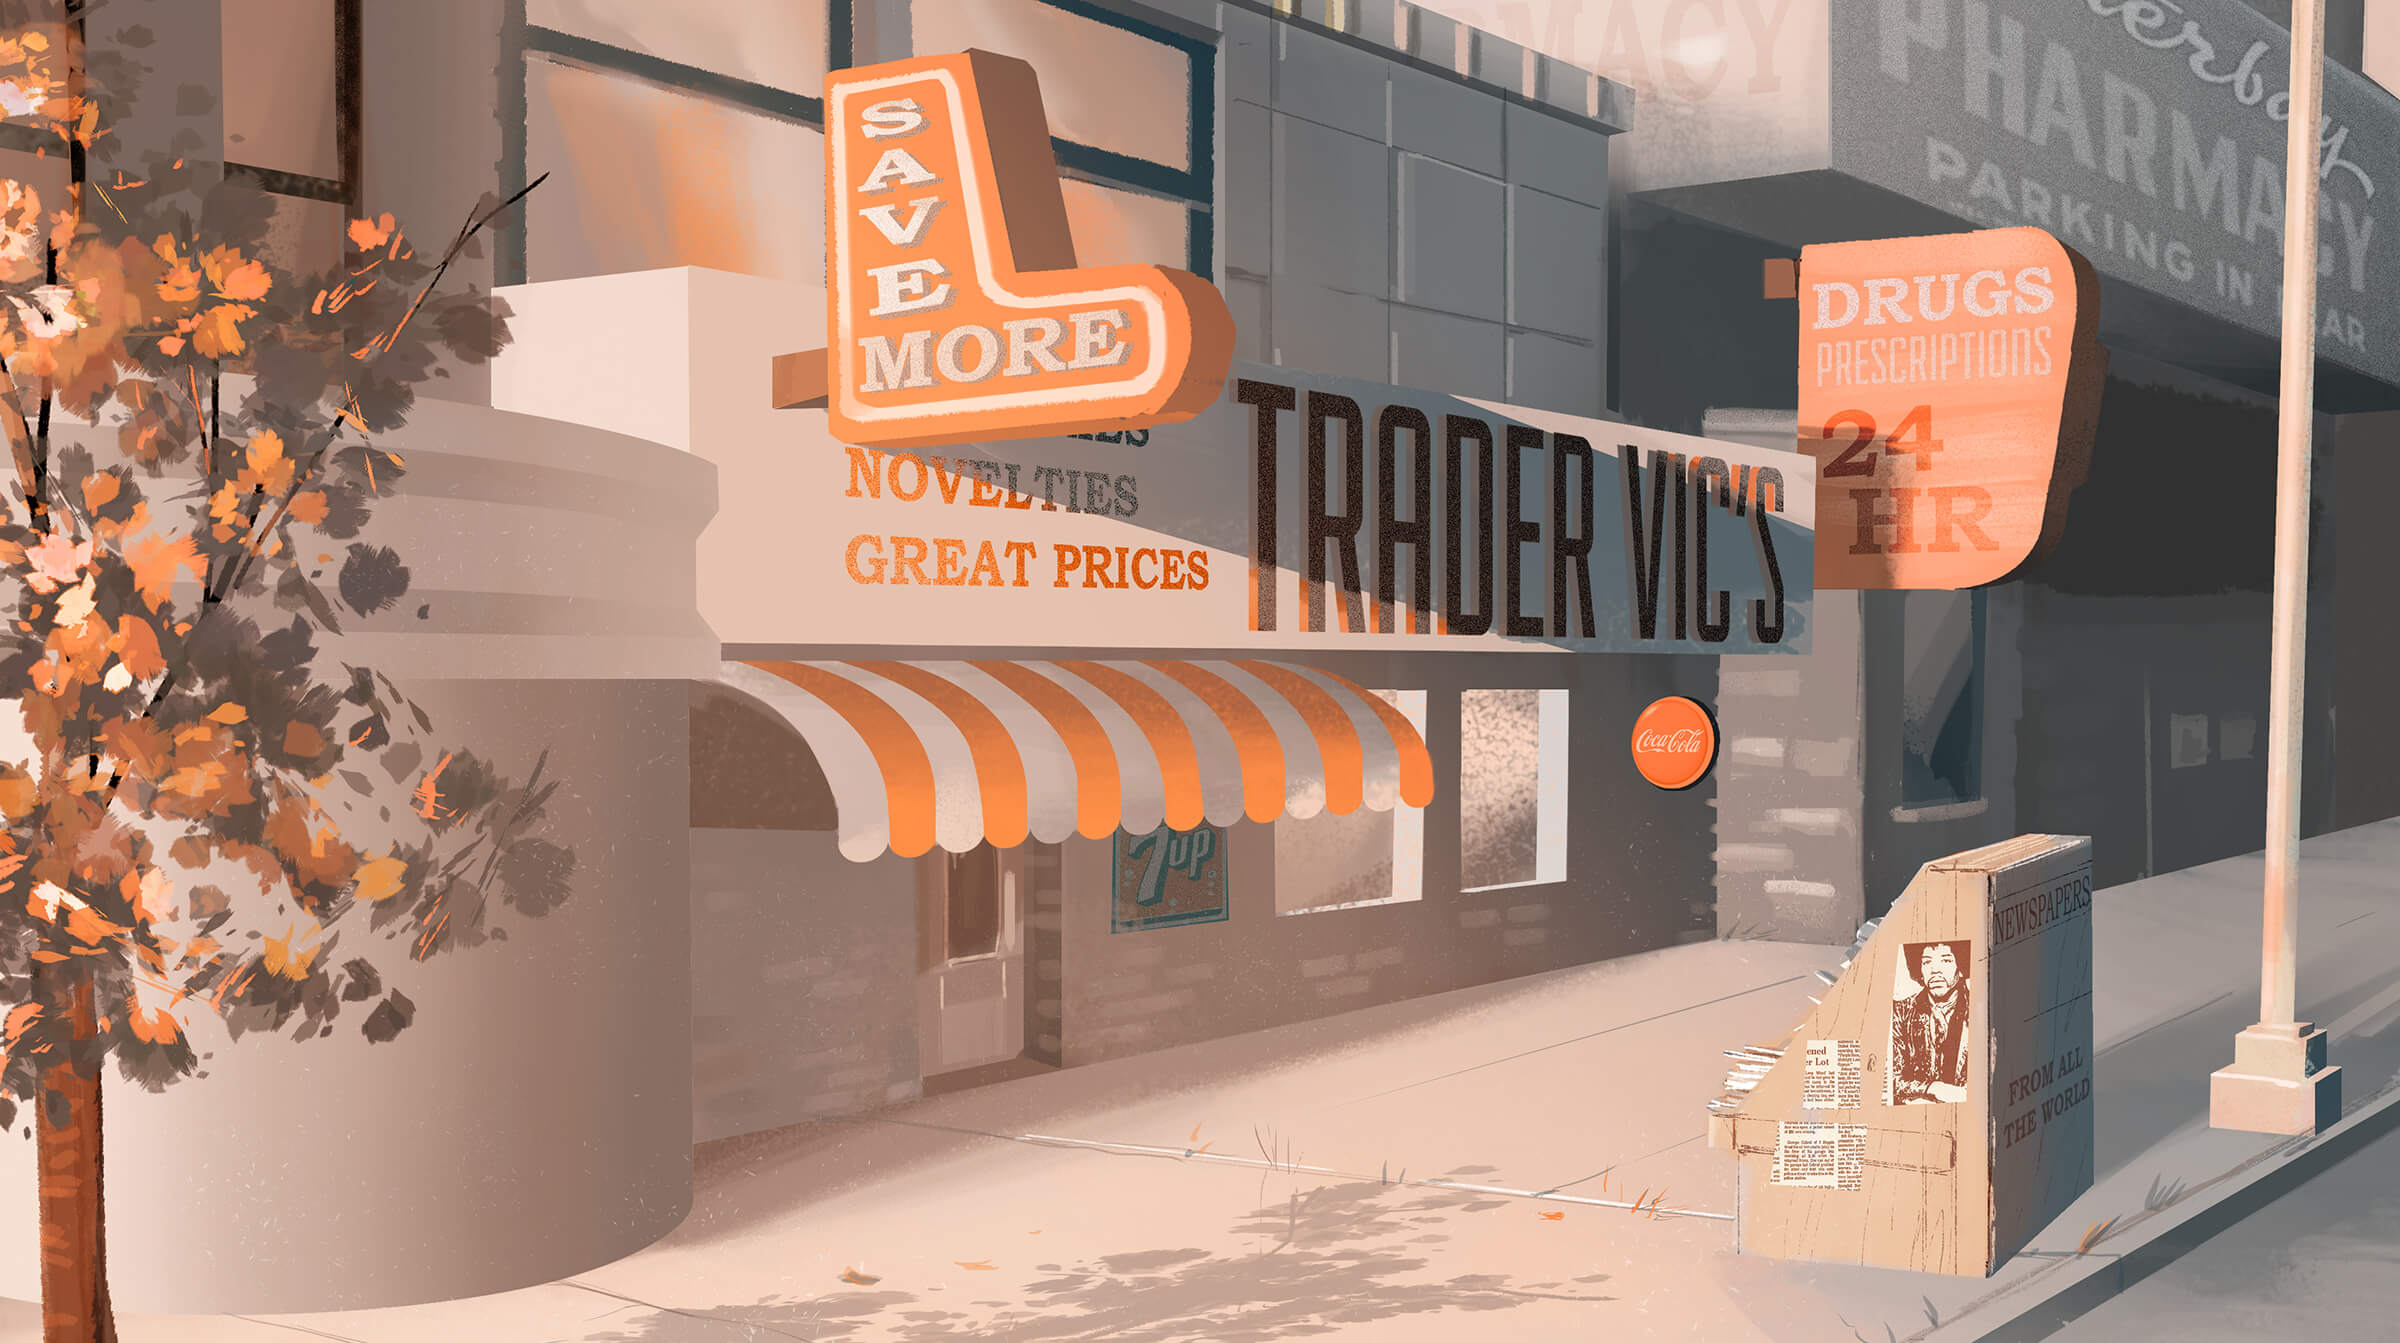 digital painting of a store called trader vic's, rendered in shades of orange and grey